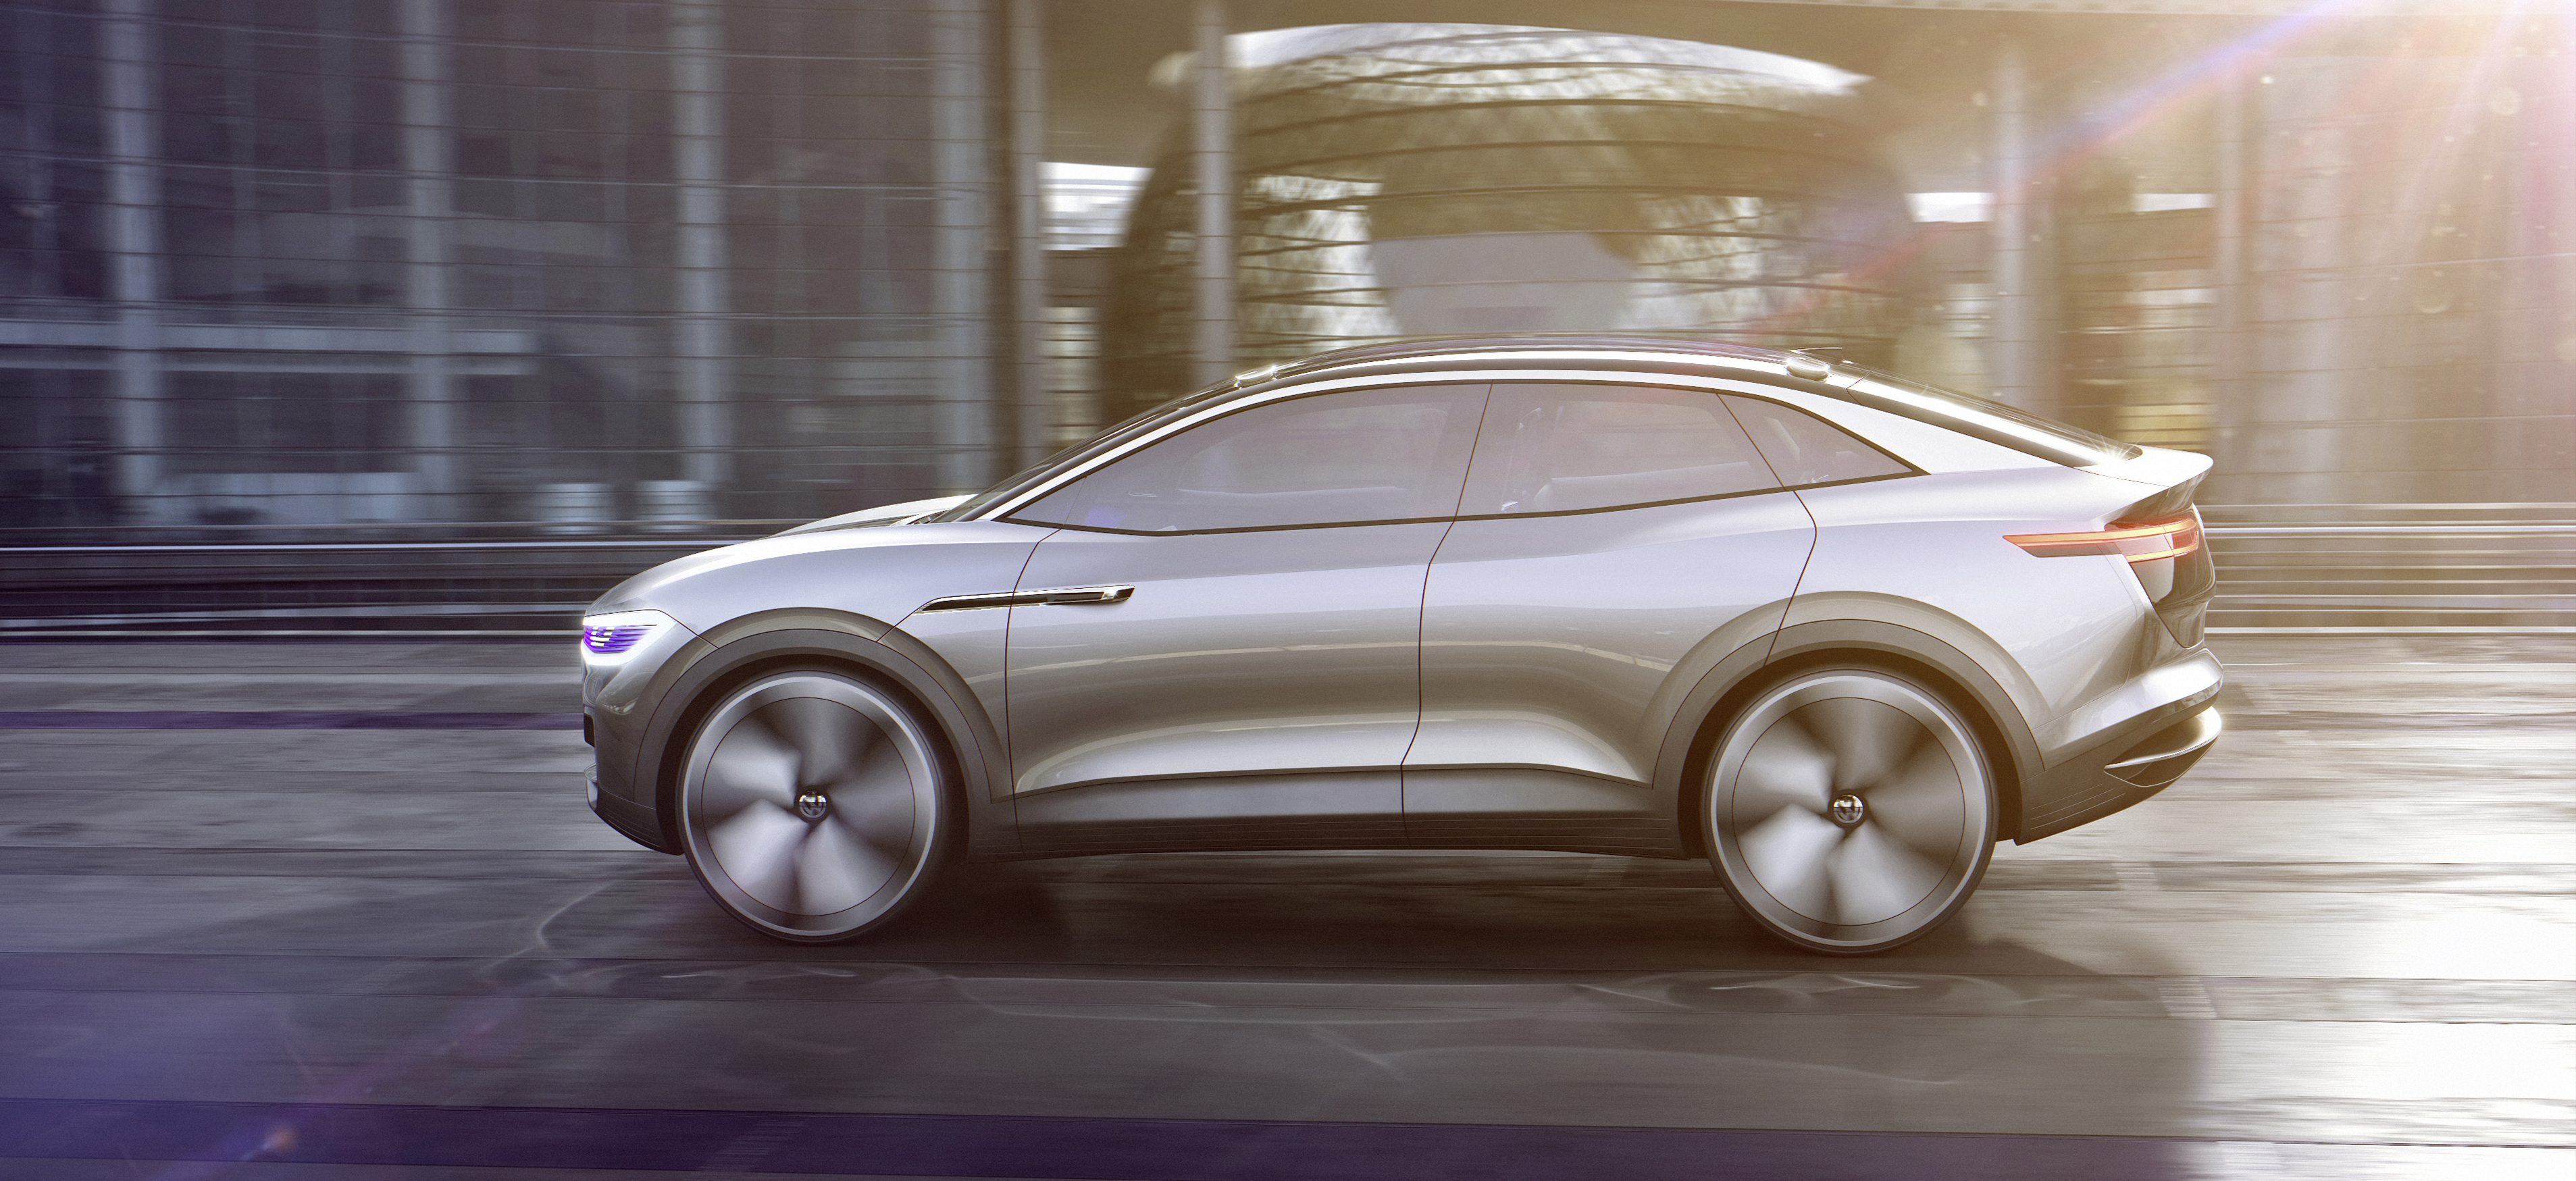 Vw Unveils New Crossover All Electric Id Concept 300 Miles Of Range And 150 Kw Charging